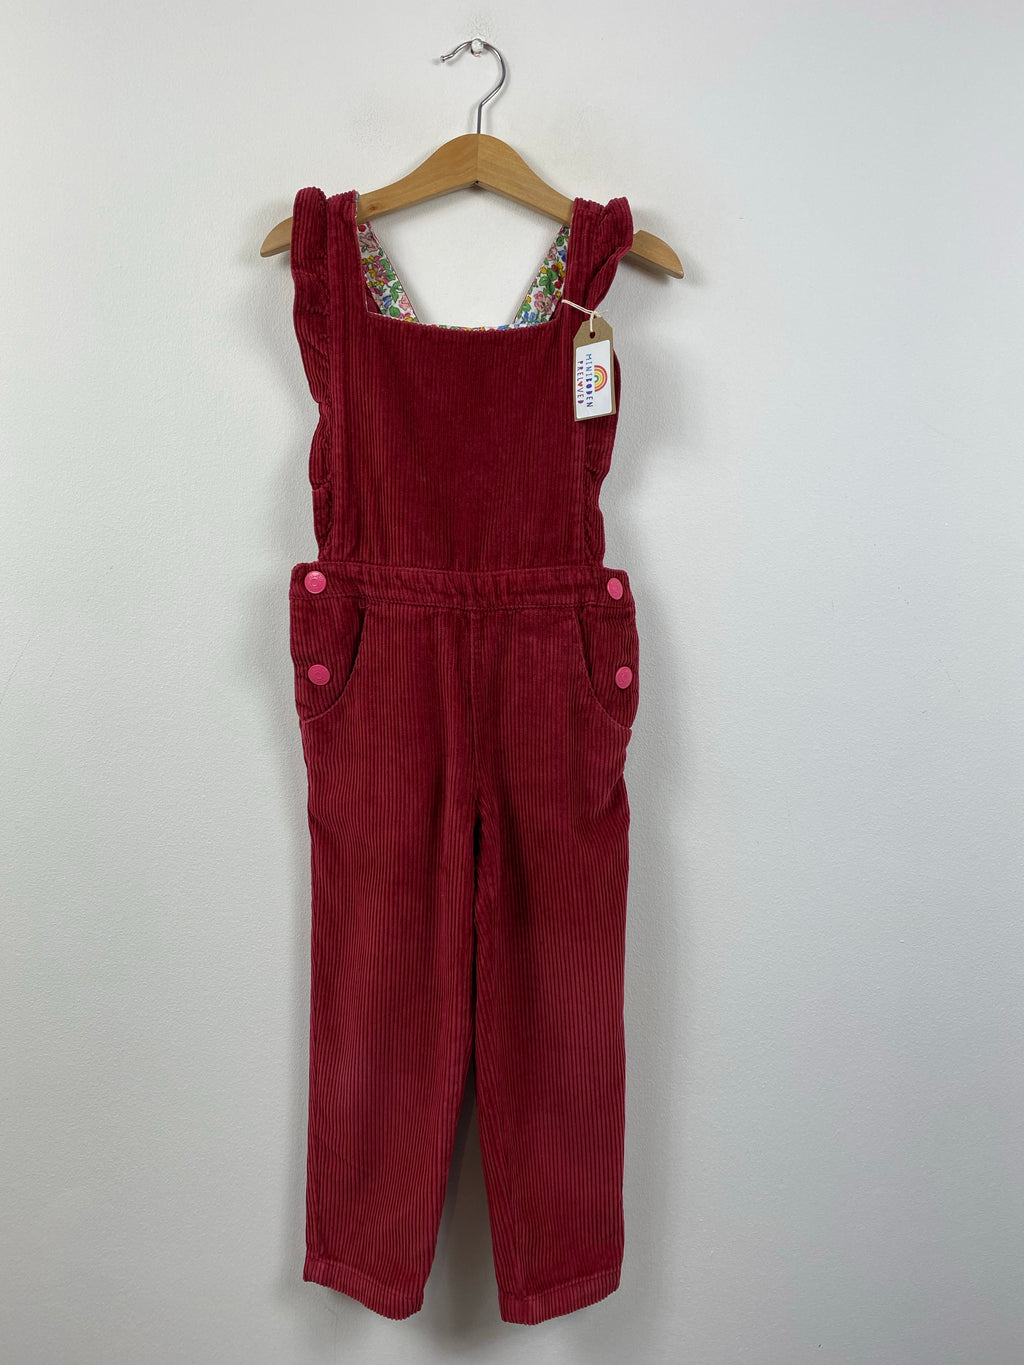 Soft Burgundy Cord Dungarees (3-4 Years)